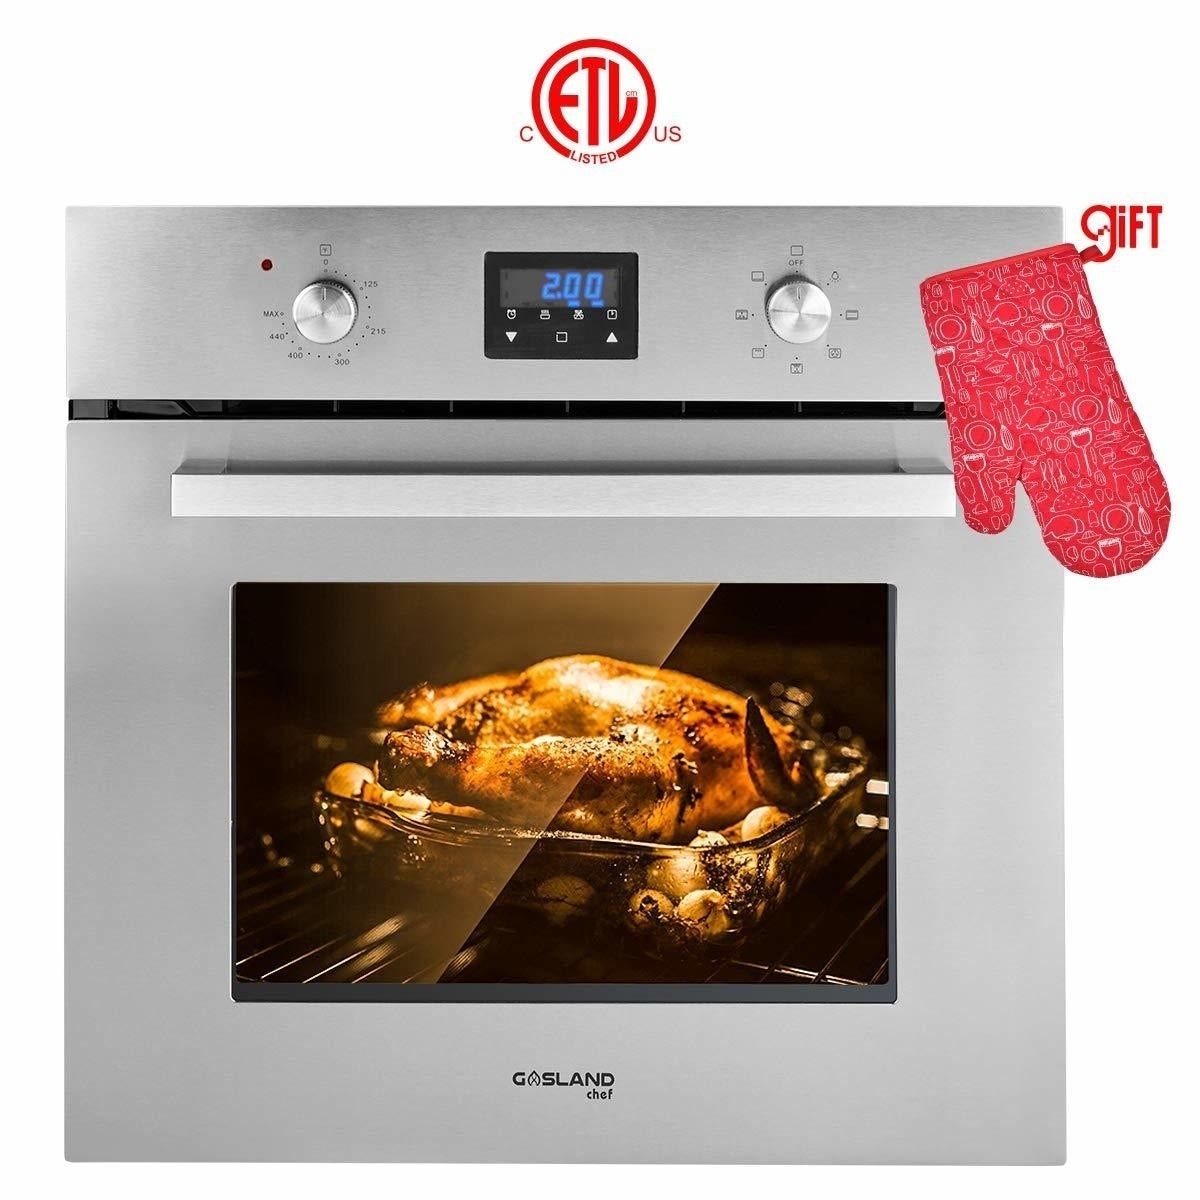 Gasland Chef Es609ds 24 Built In Single Wall Oven 9 Cooking